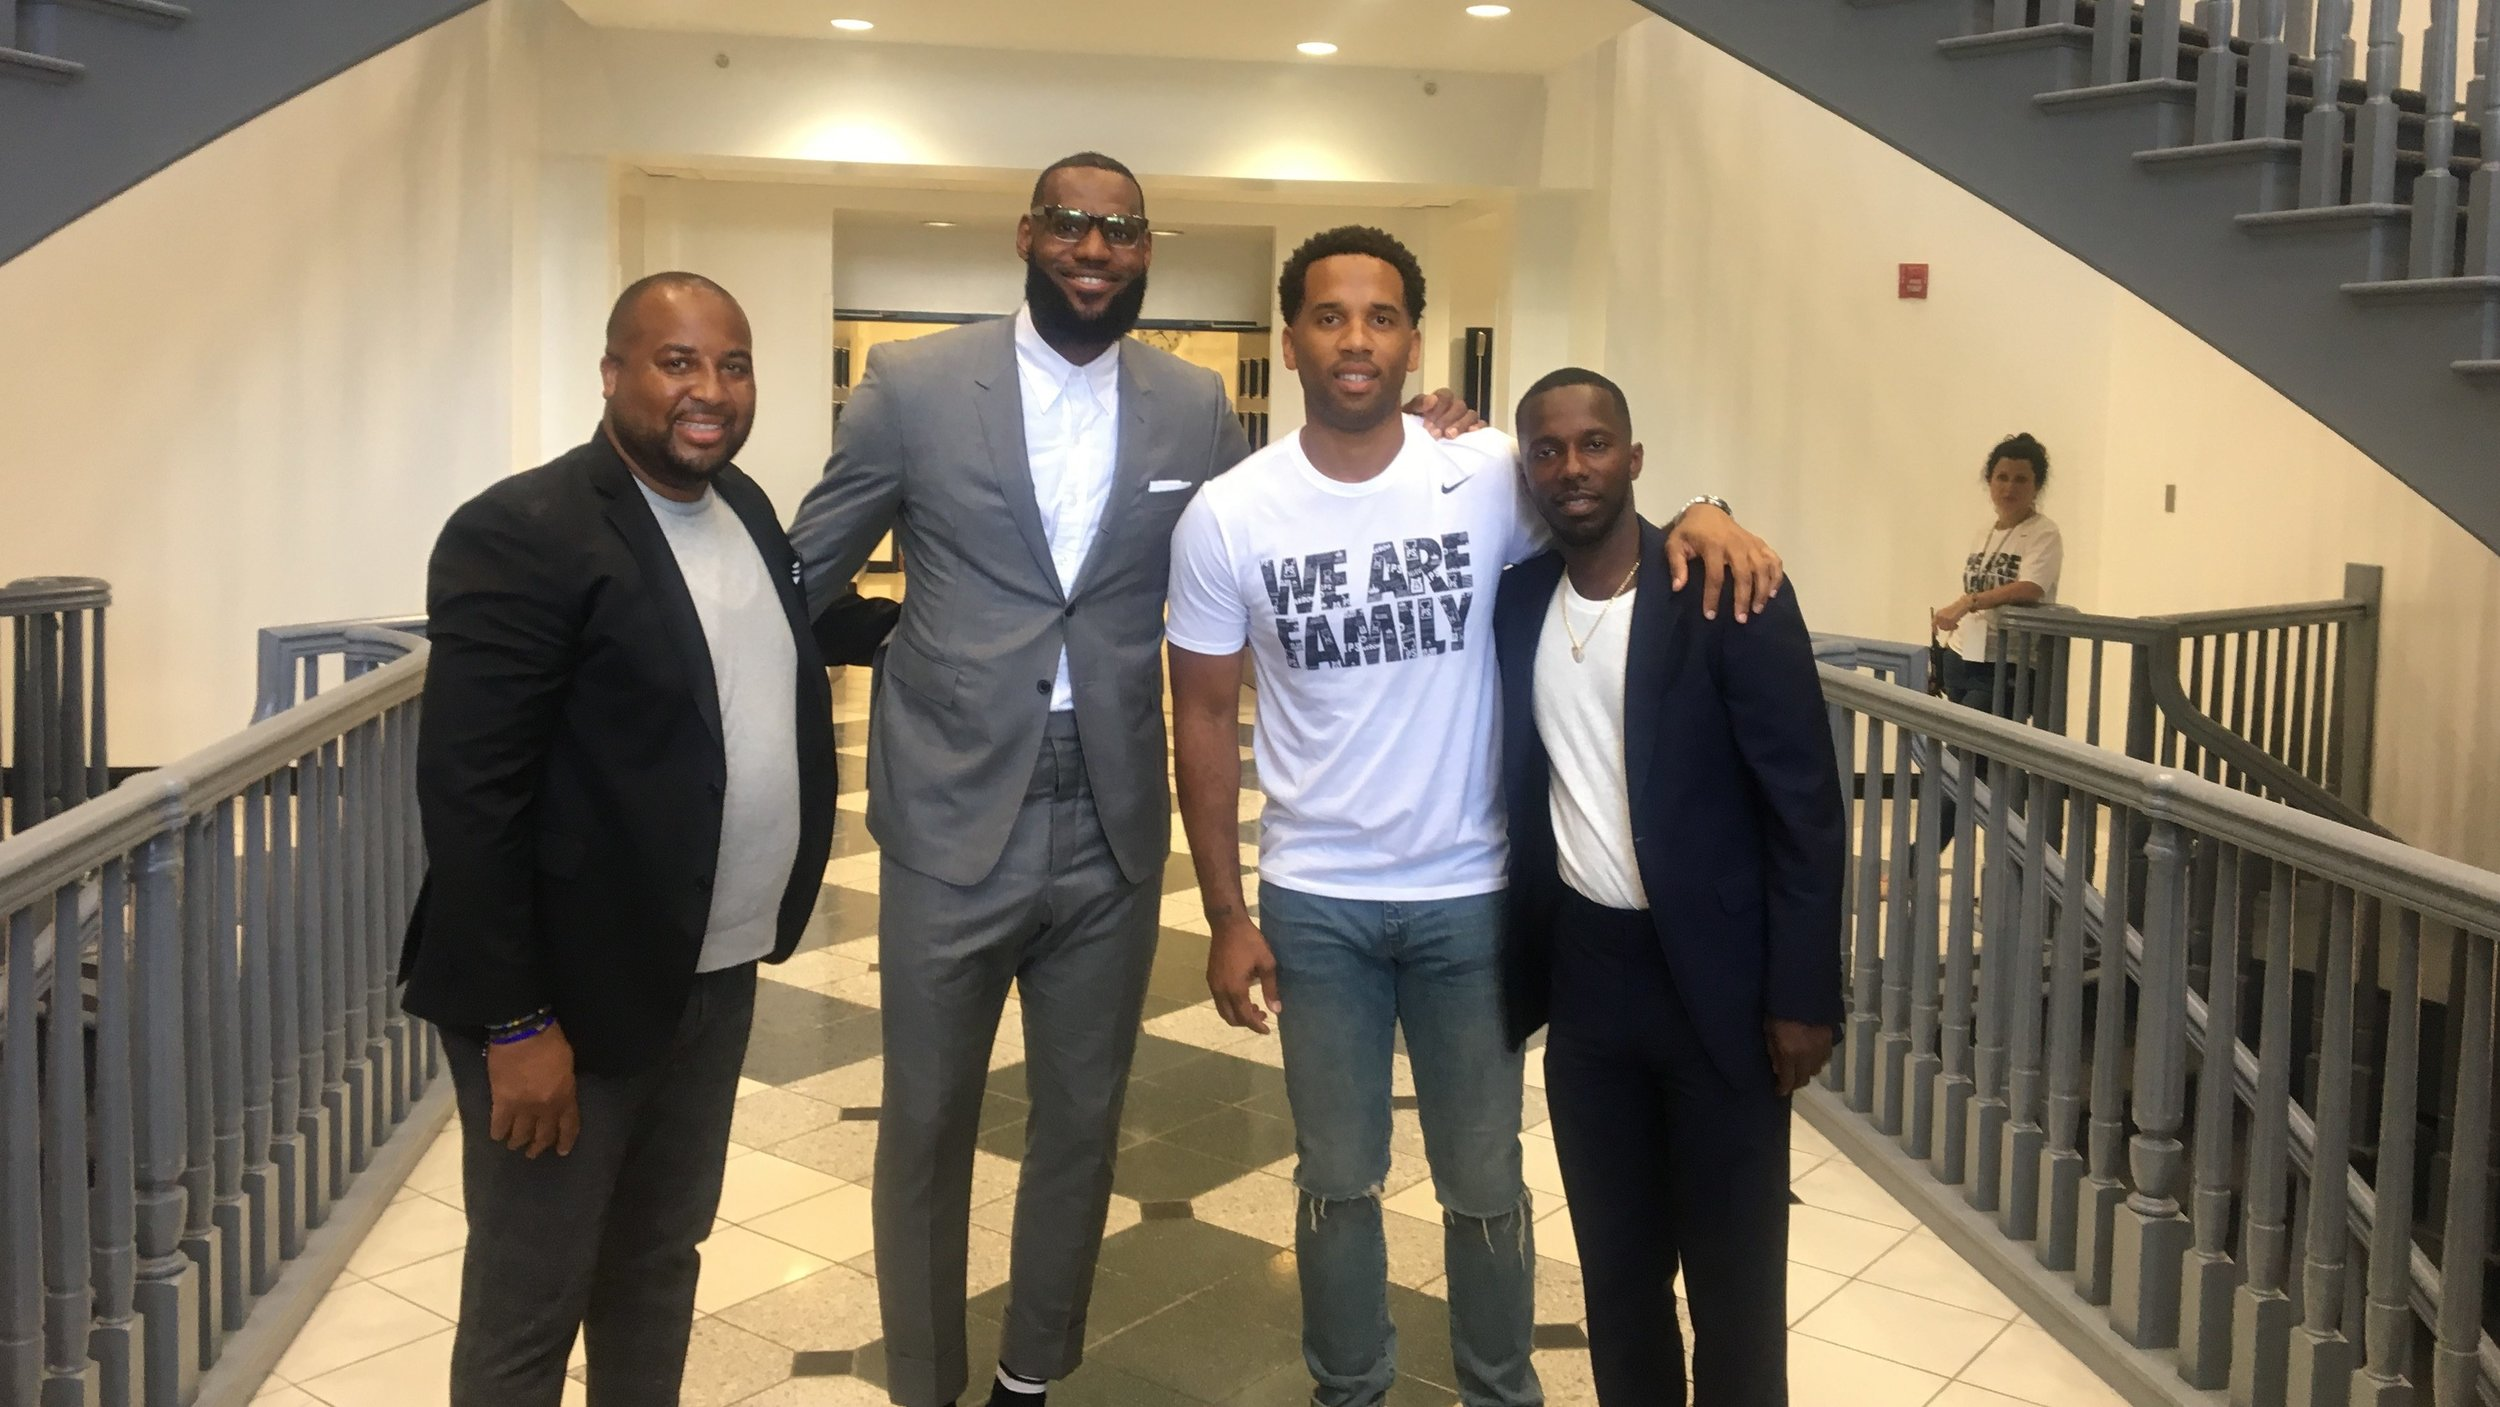 lebron james and friends.jpg